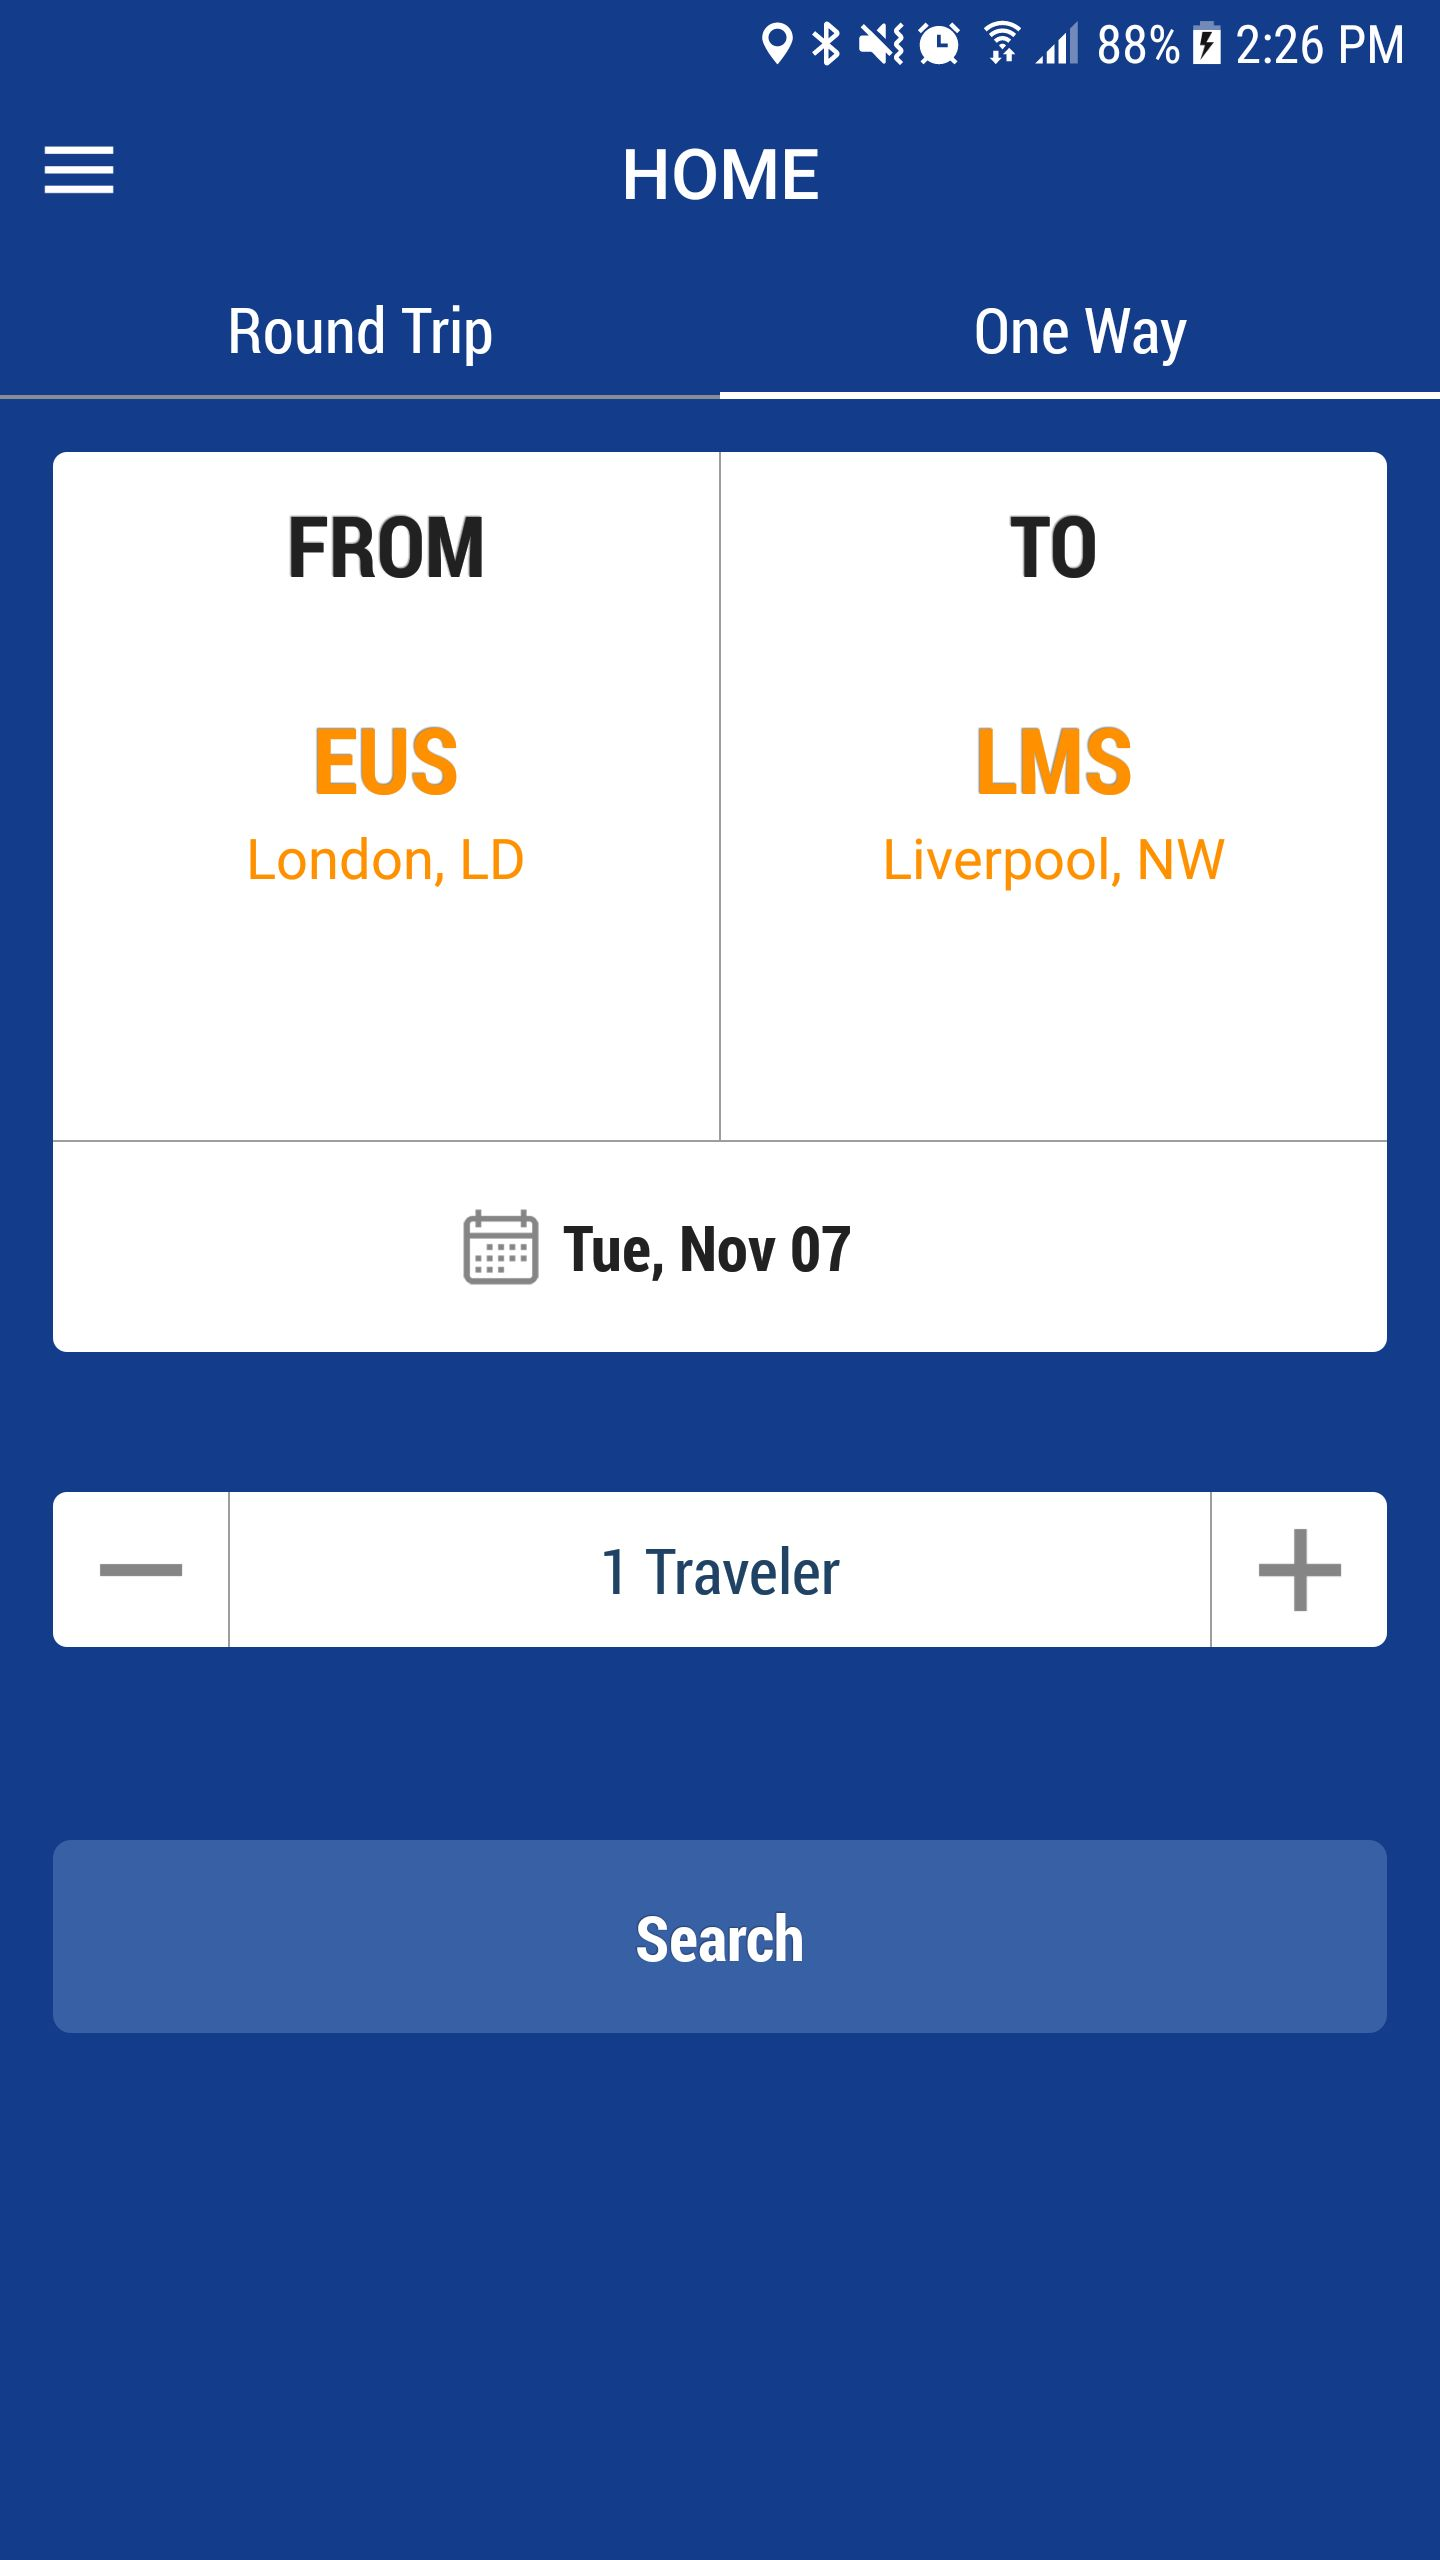 Bus Ticket Booking - Android App Source Code Screenshot 10